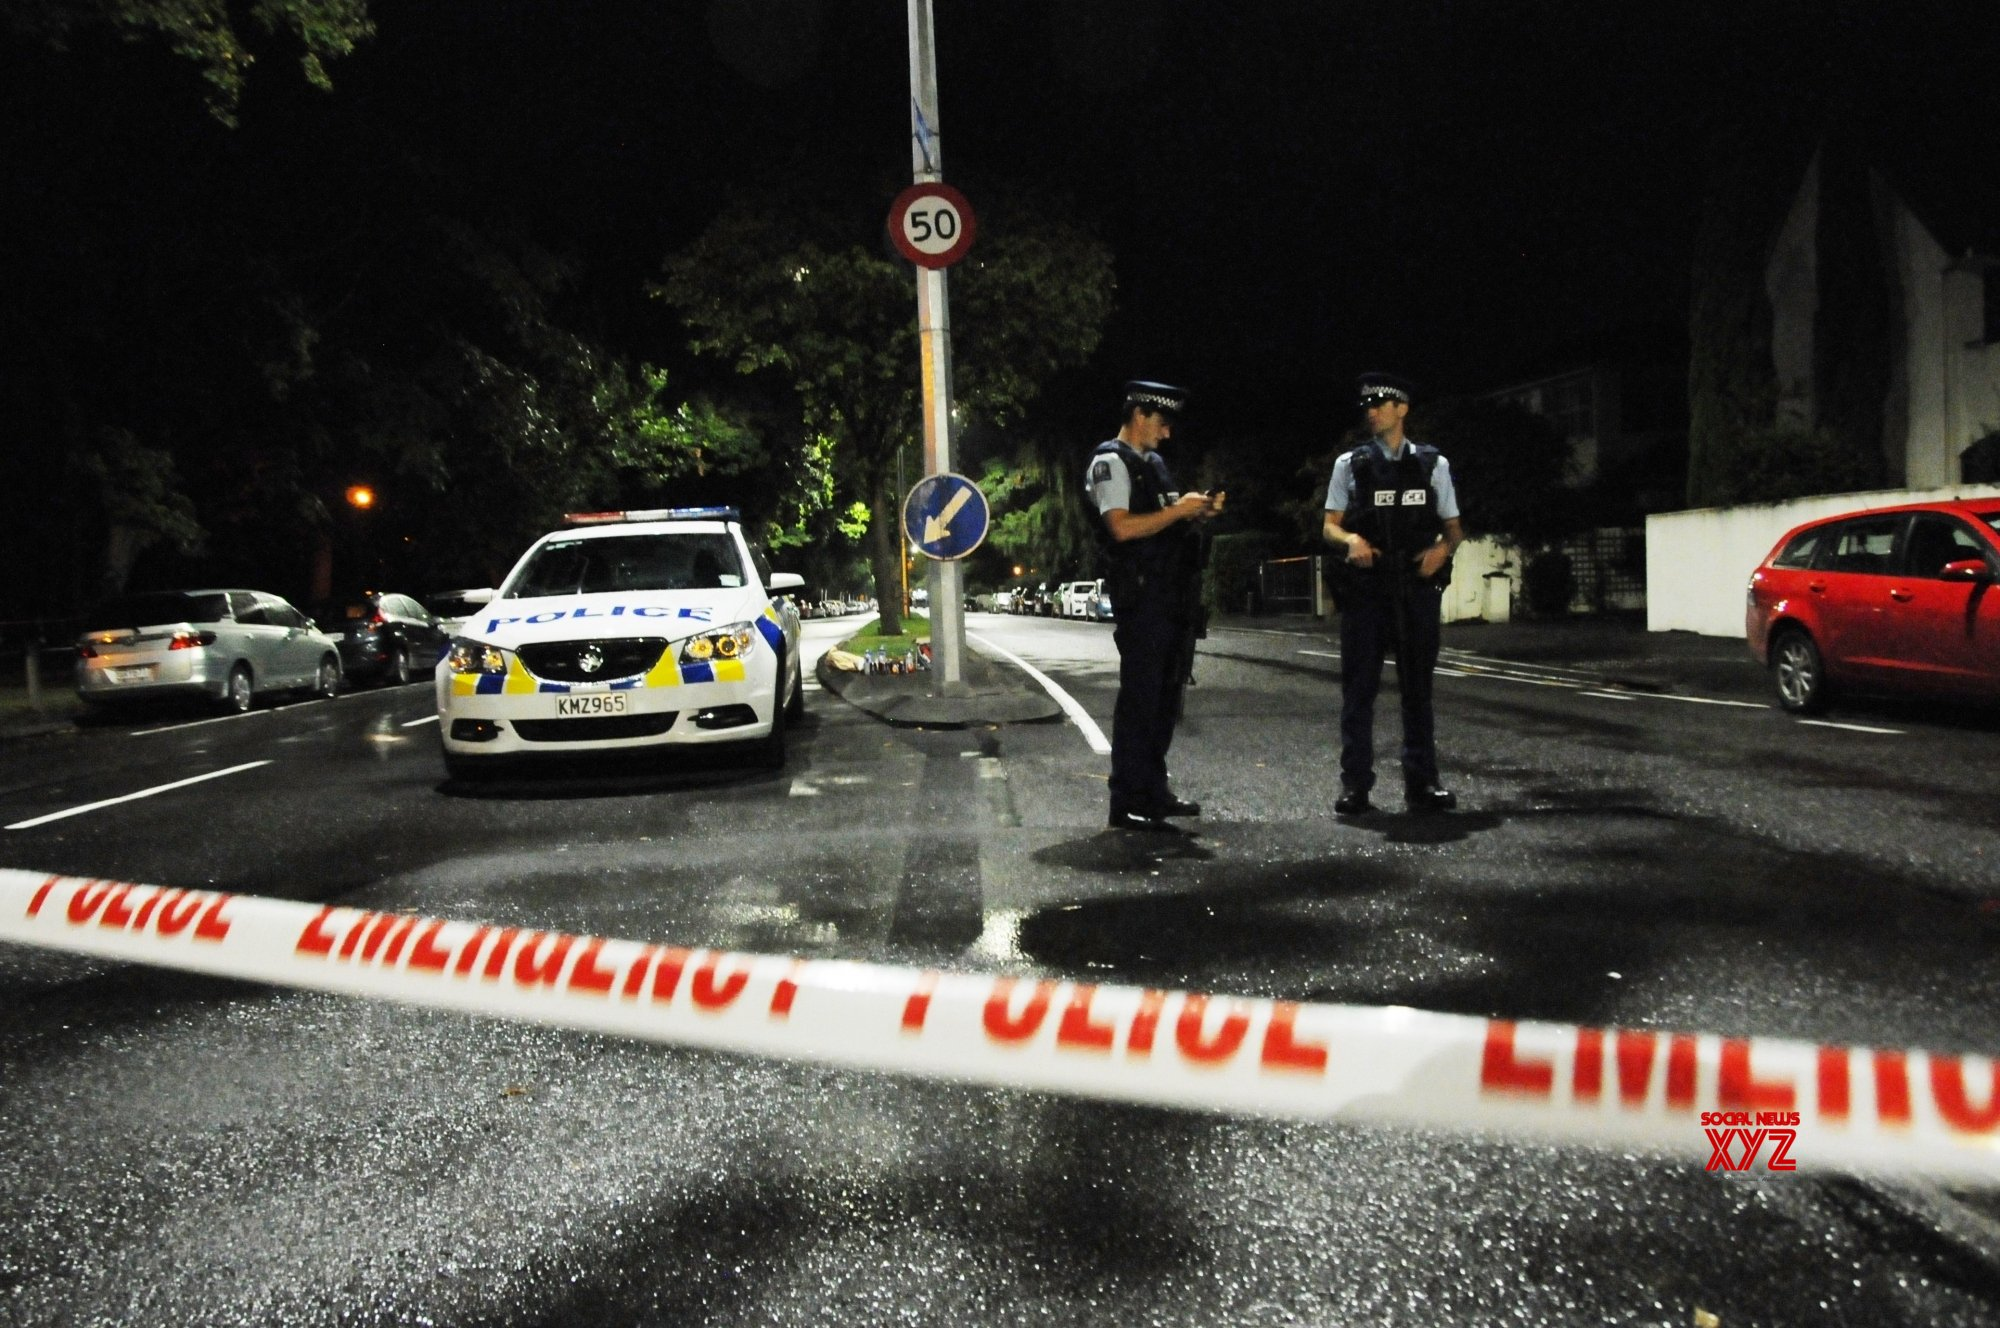 49 die in NZ mosque firing, close shave for B'desh cricketers